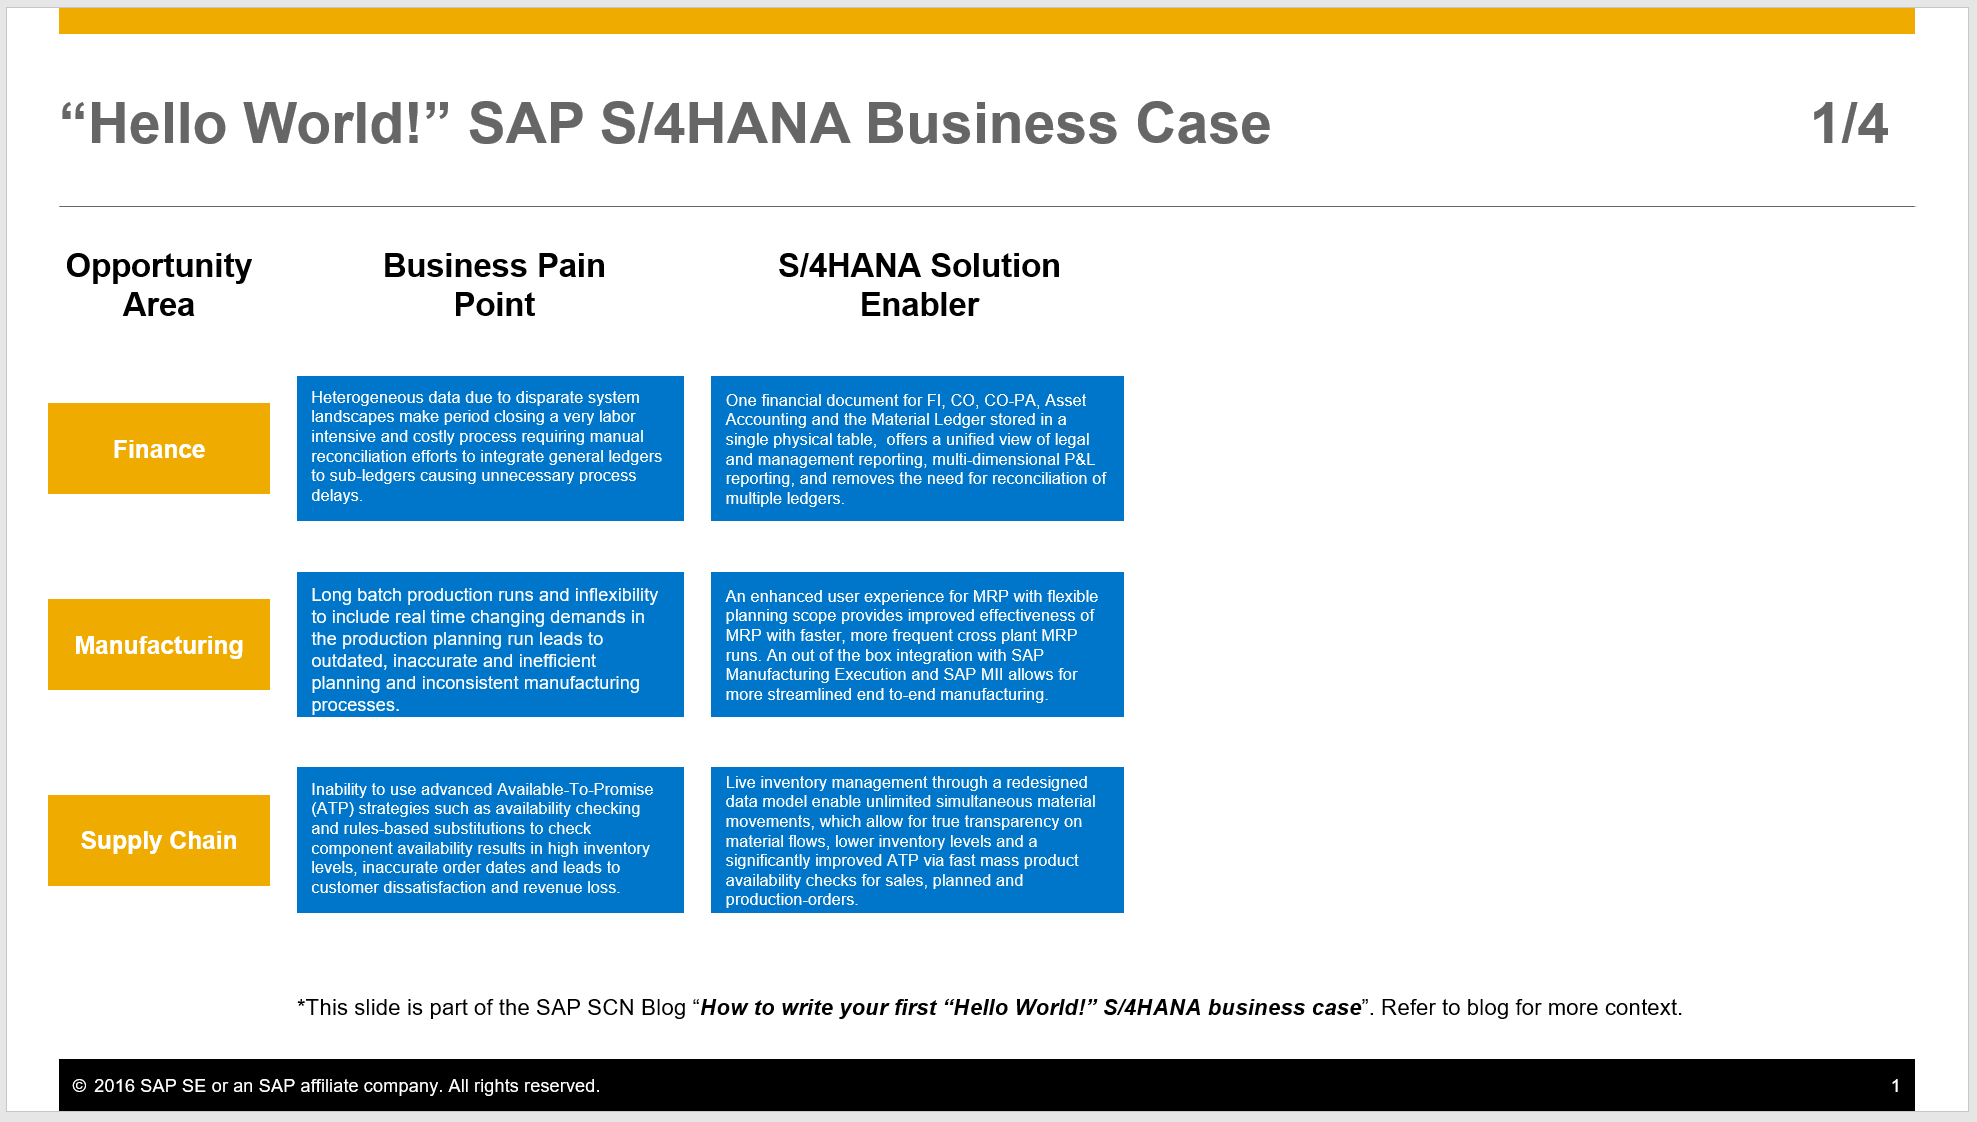 How to write your first sap s4hana business case sap news center figure 1 connecting business pain points with solution enablers for sap s4hana sciox Images